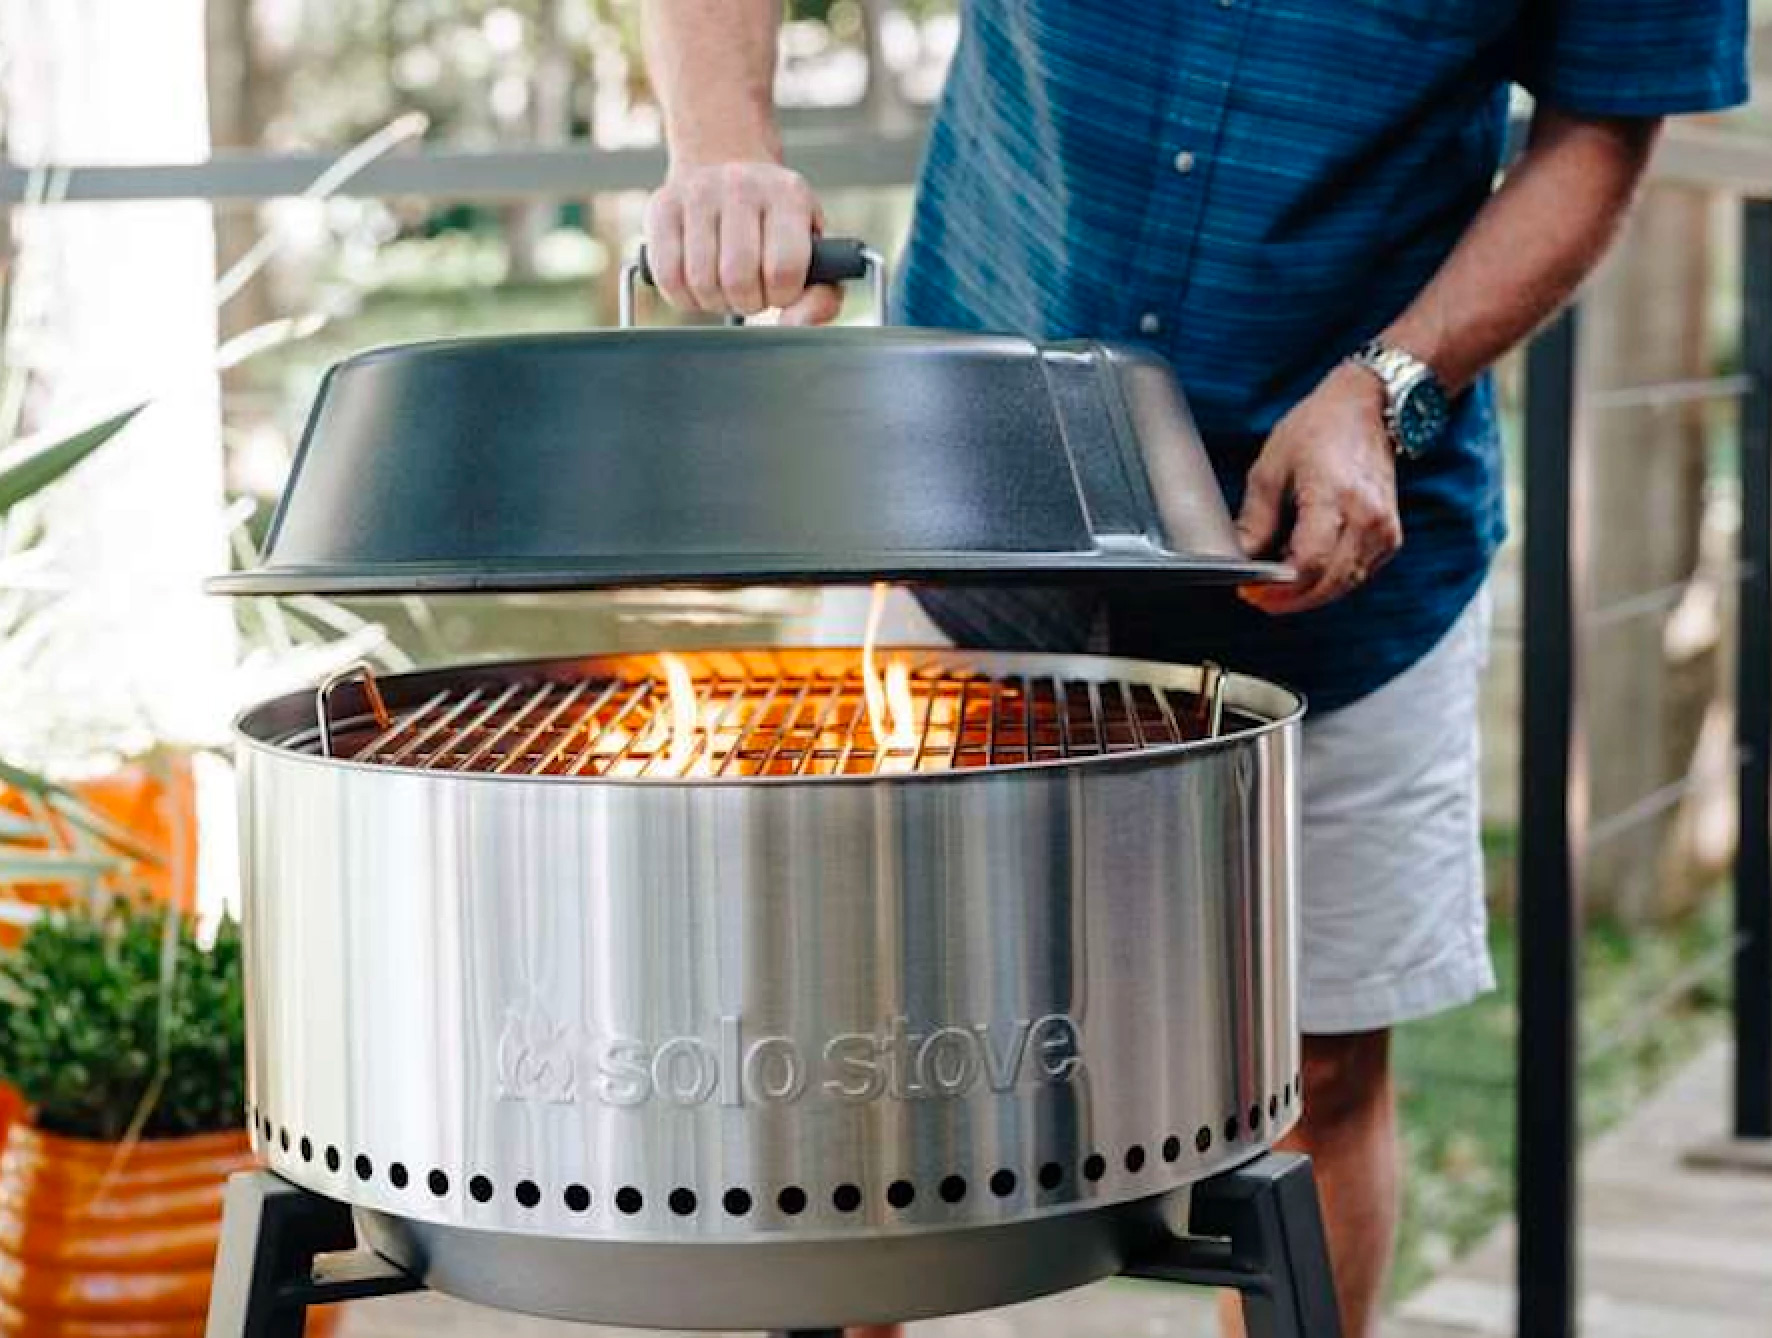 The Solo Stove Grill Burns Clean at werd.com